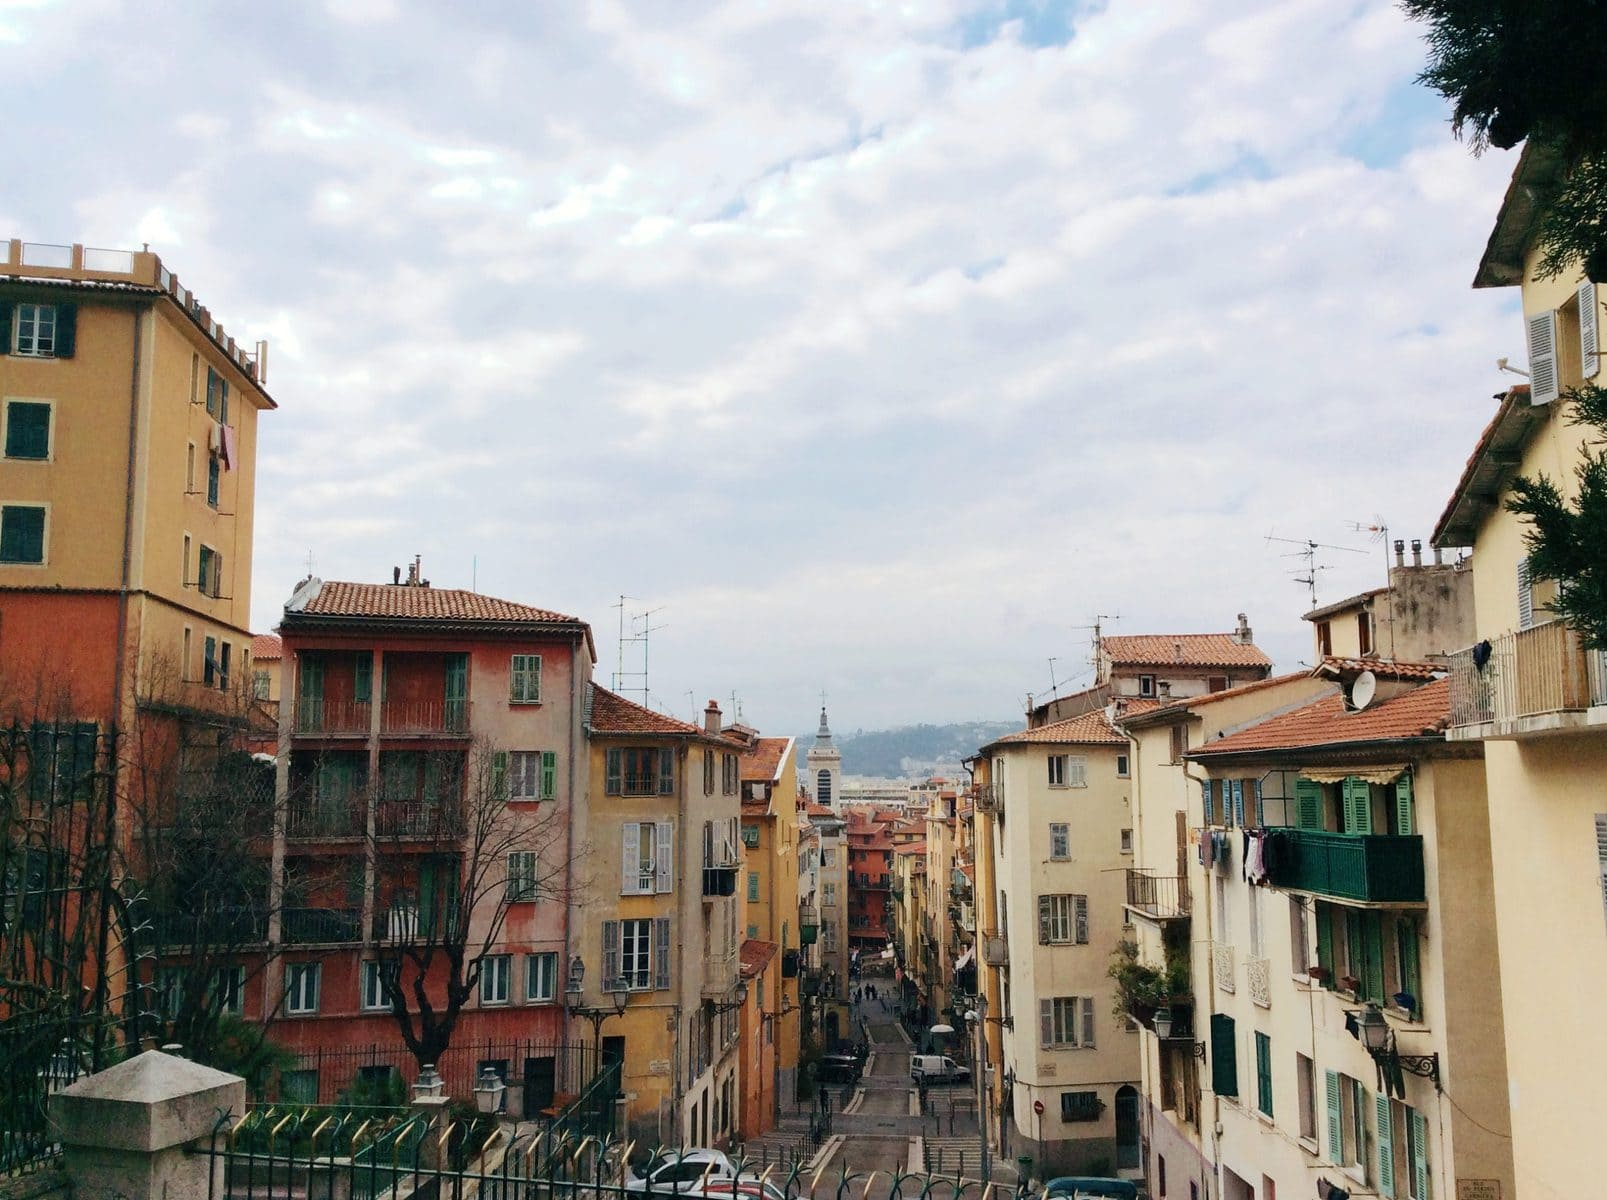 Colorful houses in Vieux Nice with coral rooftops